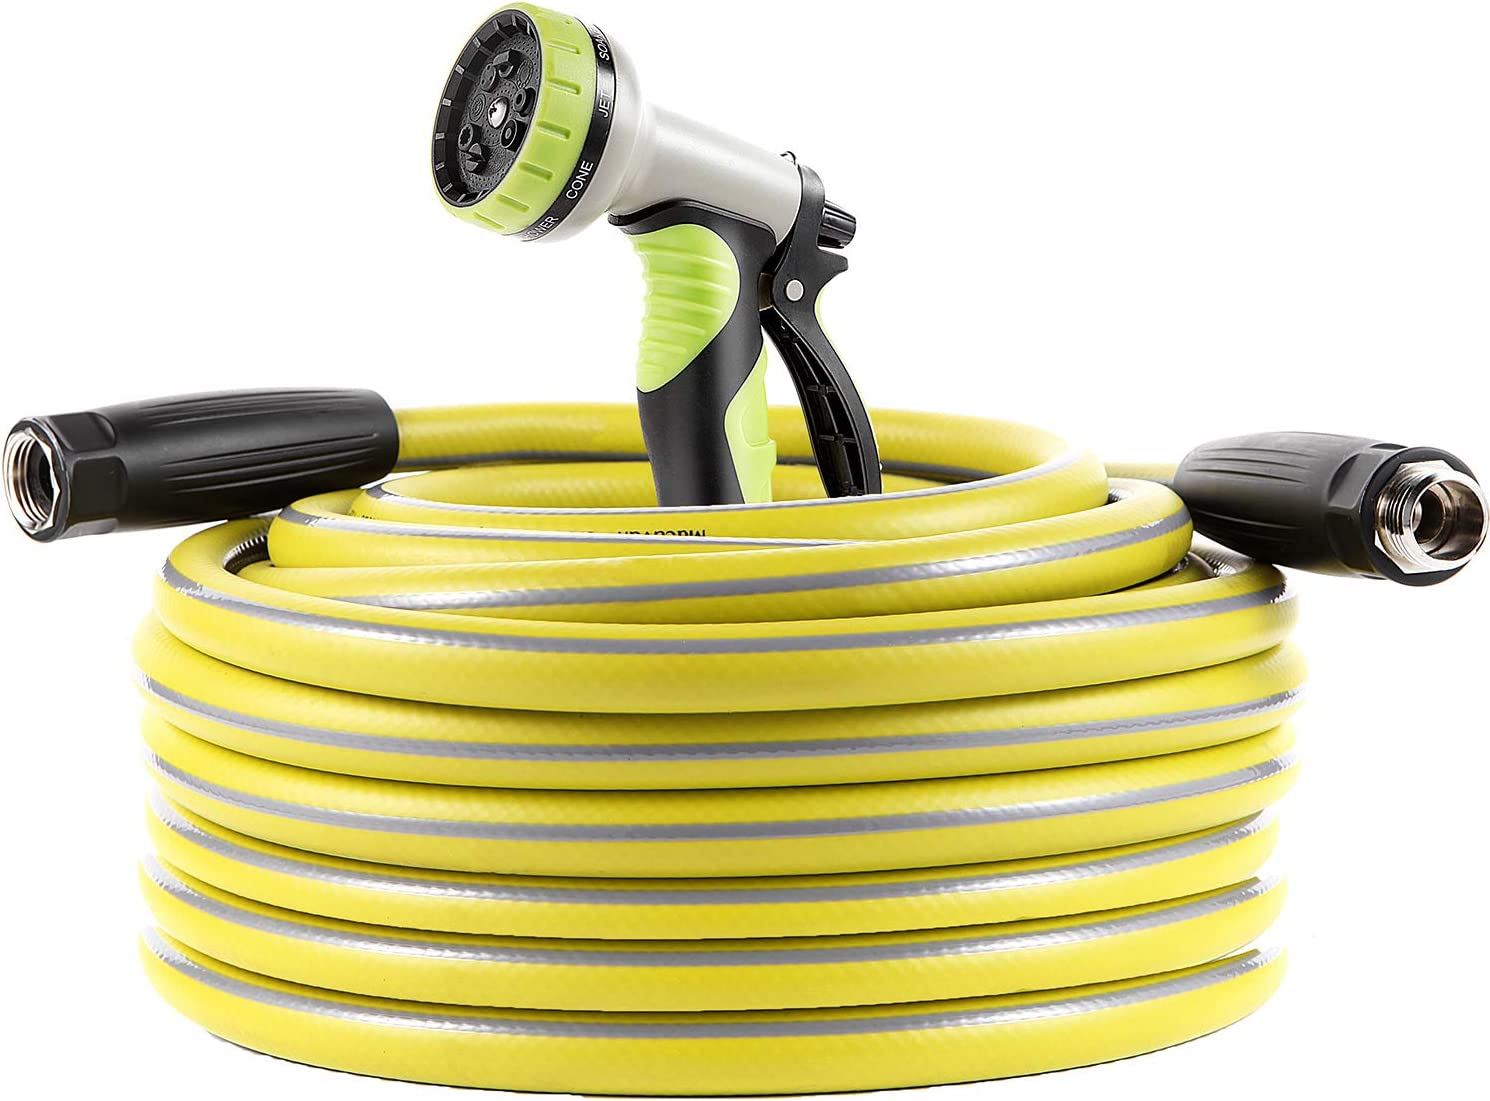 Macuvan Garden Hose 75 ft Heavy Duty-Water Hose with 9 Way Spray Nozzle and Flexible 4 Layers Hybrid-3/4'' Nickel Plated Brass Fittings-5/8'' Inner Core-Lead-Free Outdoor Durable Lightweight Pipe Set